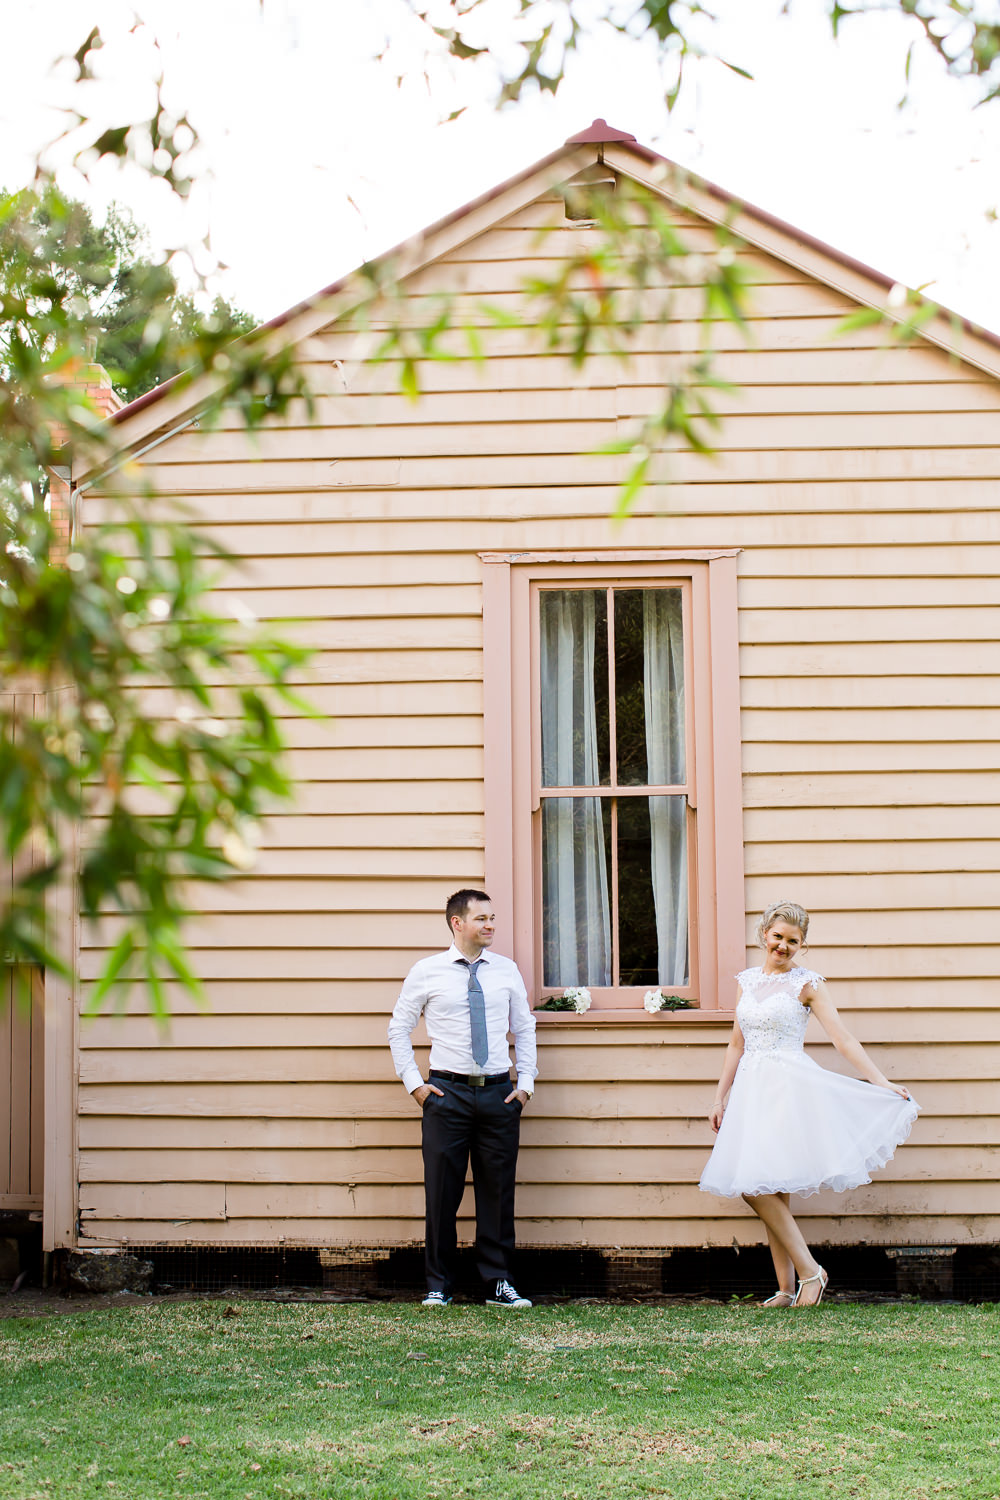 relaxed-wedding-non-traditional-wedding-gemma-clarke-phtography-australian-wedding-61